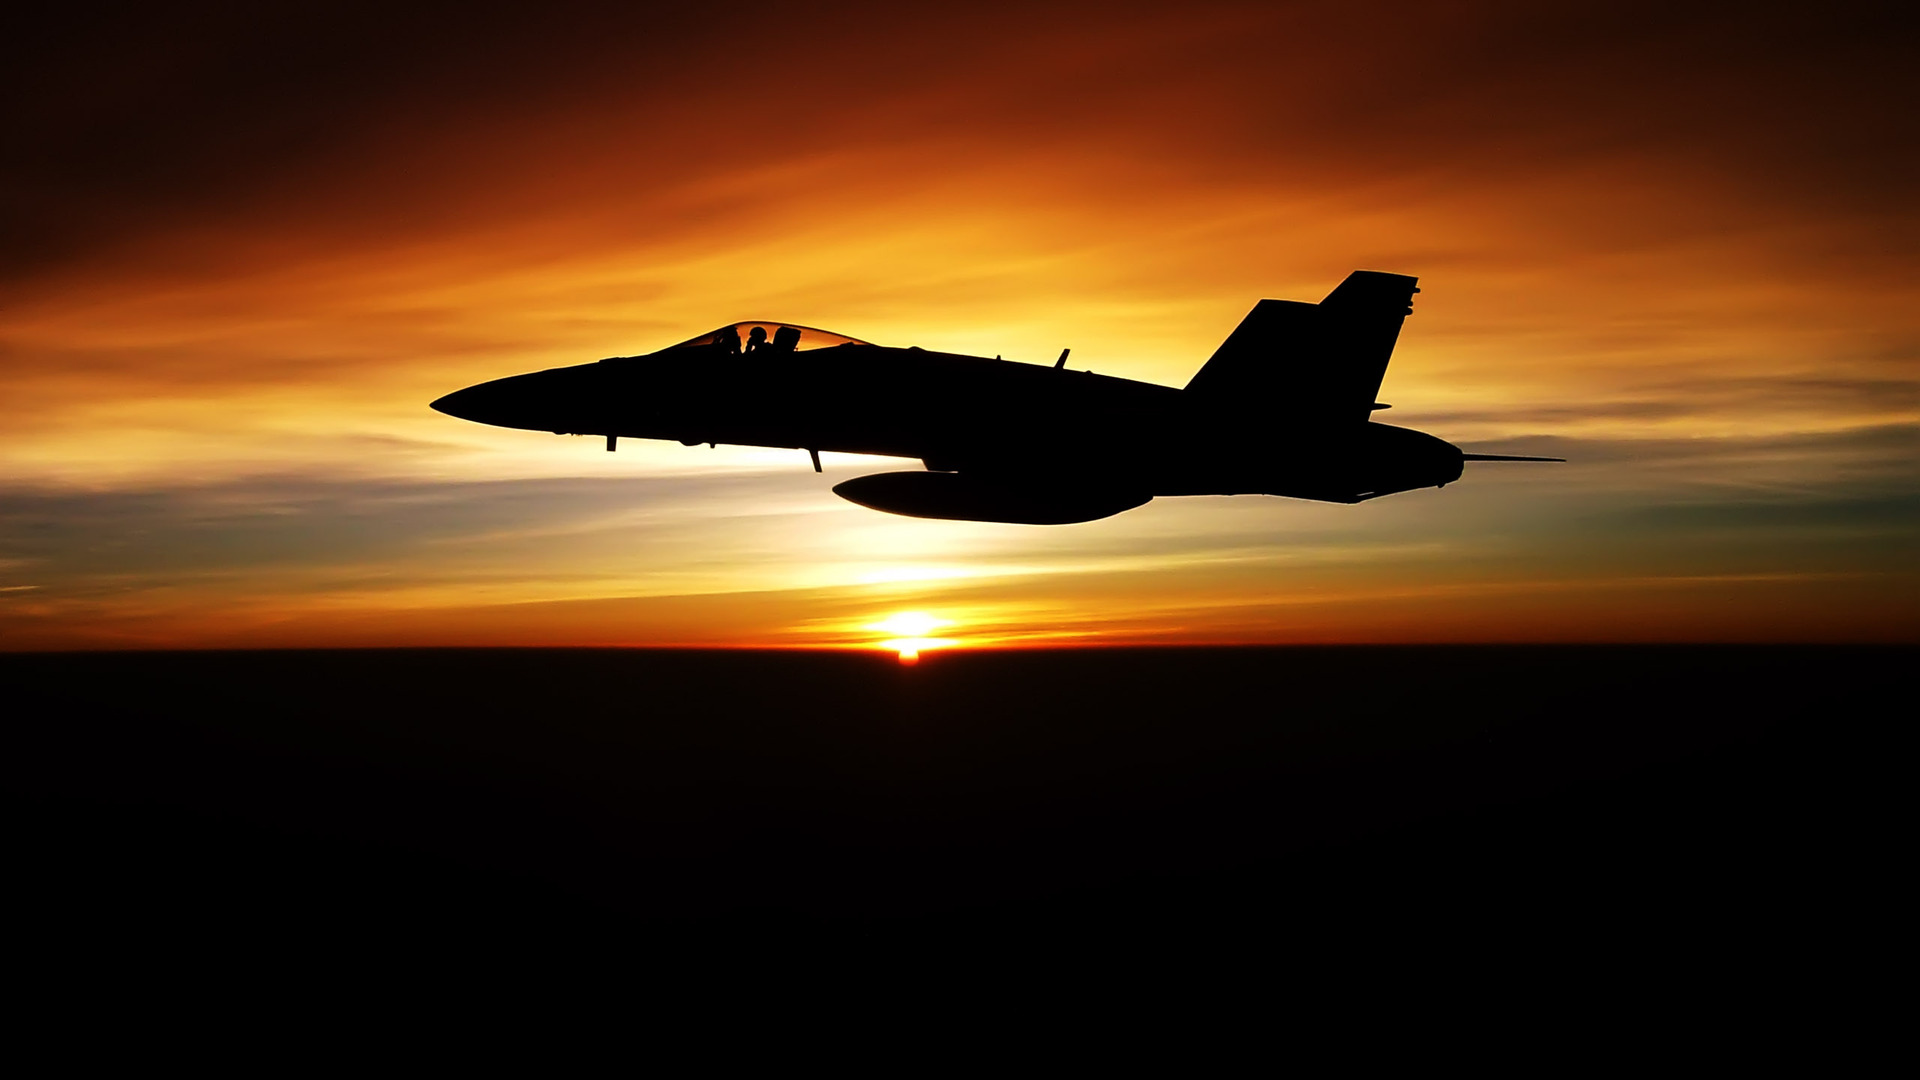 1920x1080 plane sunset laptop full hd 1080p hd 4k wallpapers, images